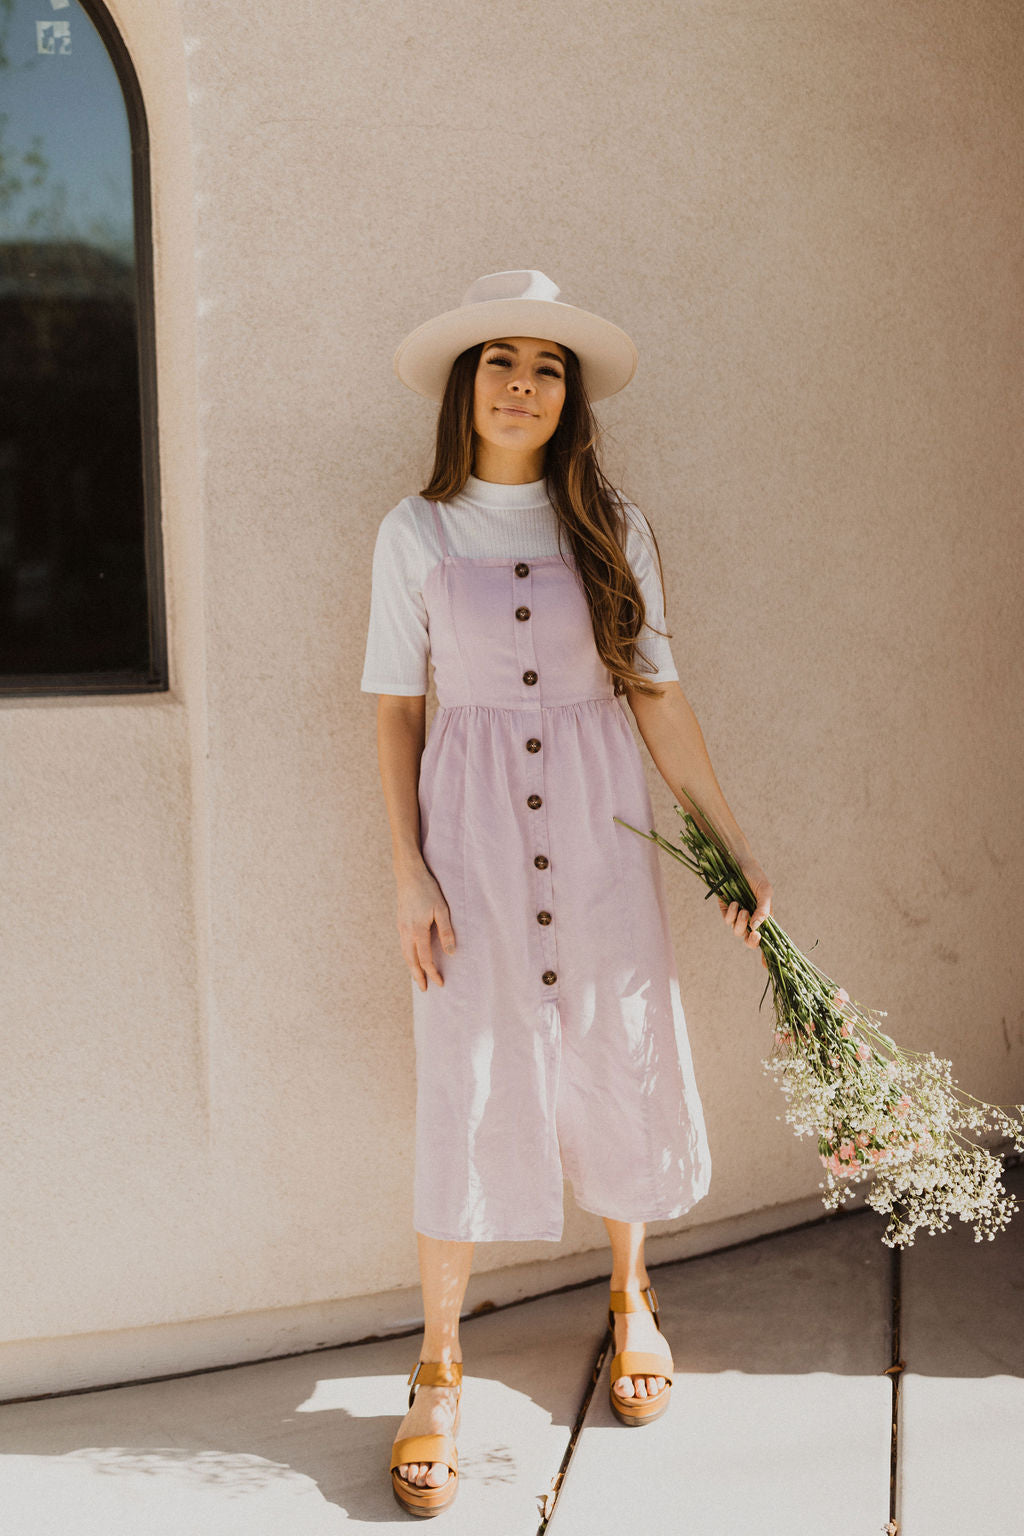 THE CHENEY SLEEVELESS DRESS IN LILAC